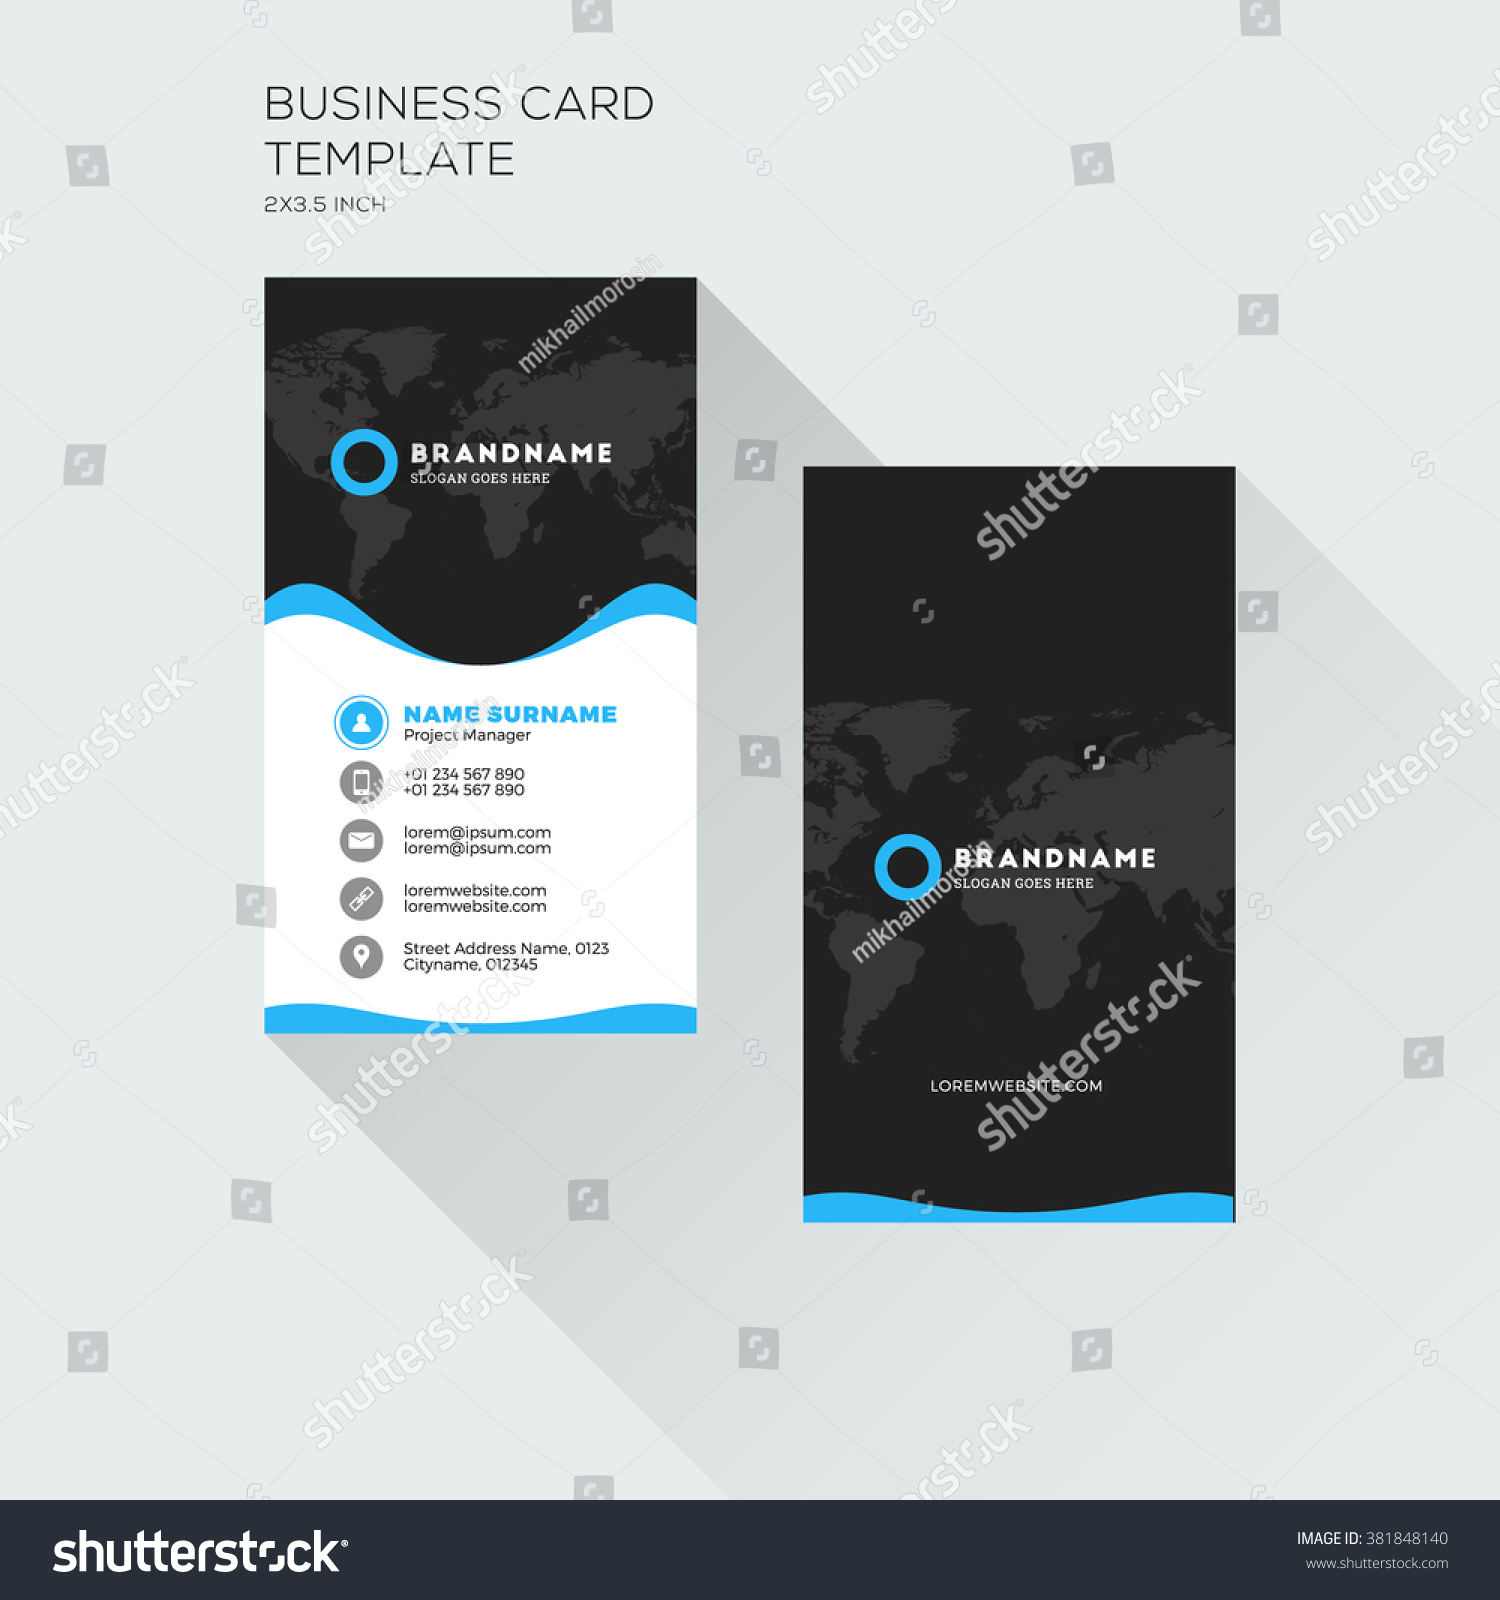 Vertical business card print template personal stock vector hd vertical business card print template personal visiting card with company logo black and blue fbccfo Choice Image